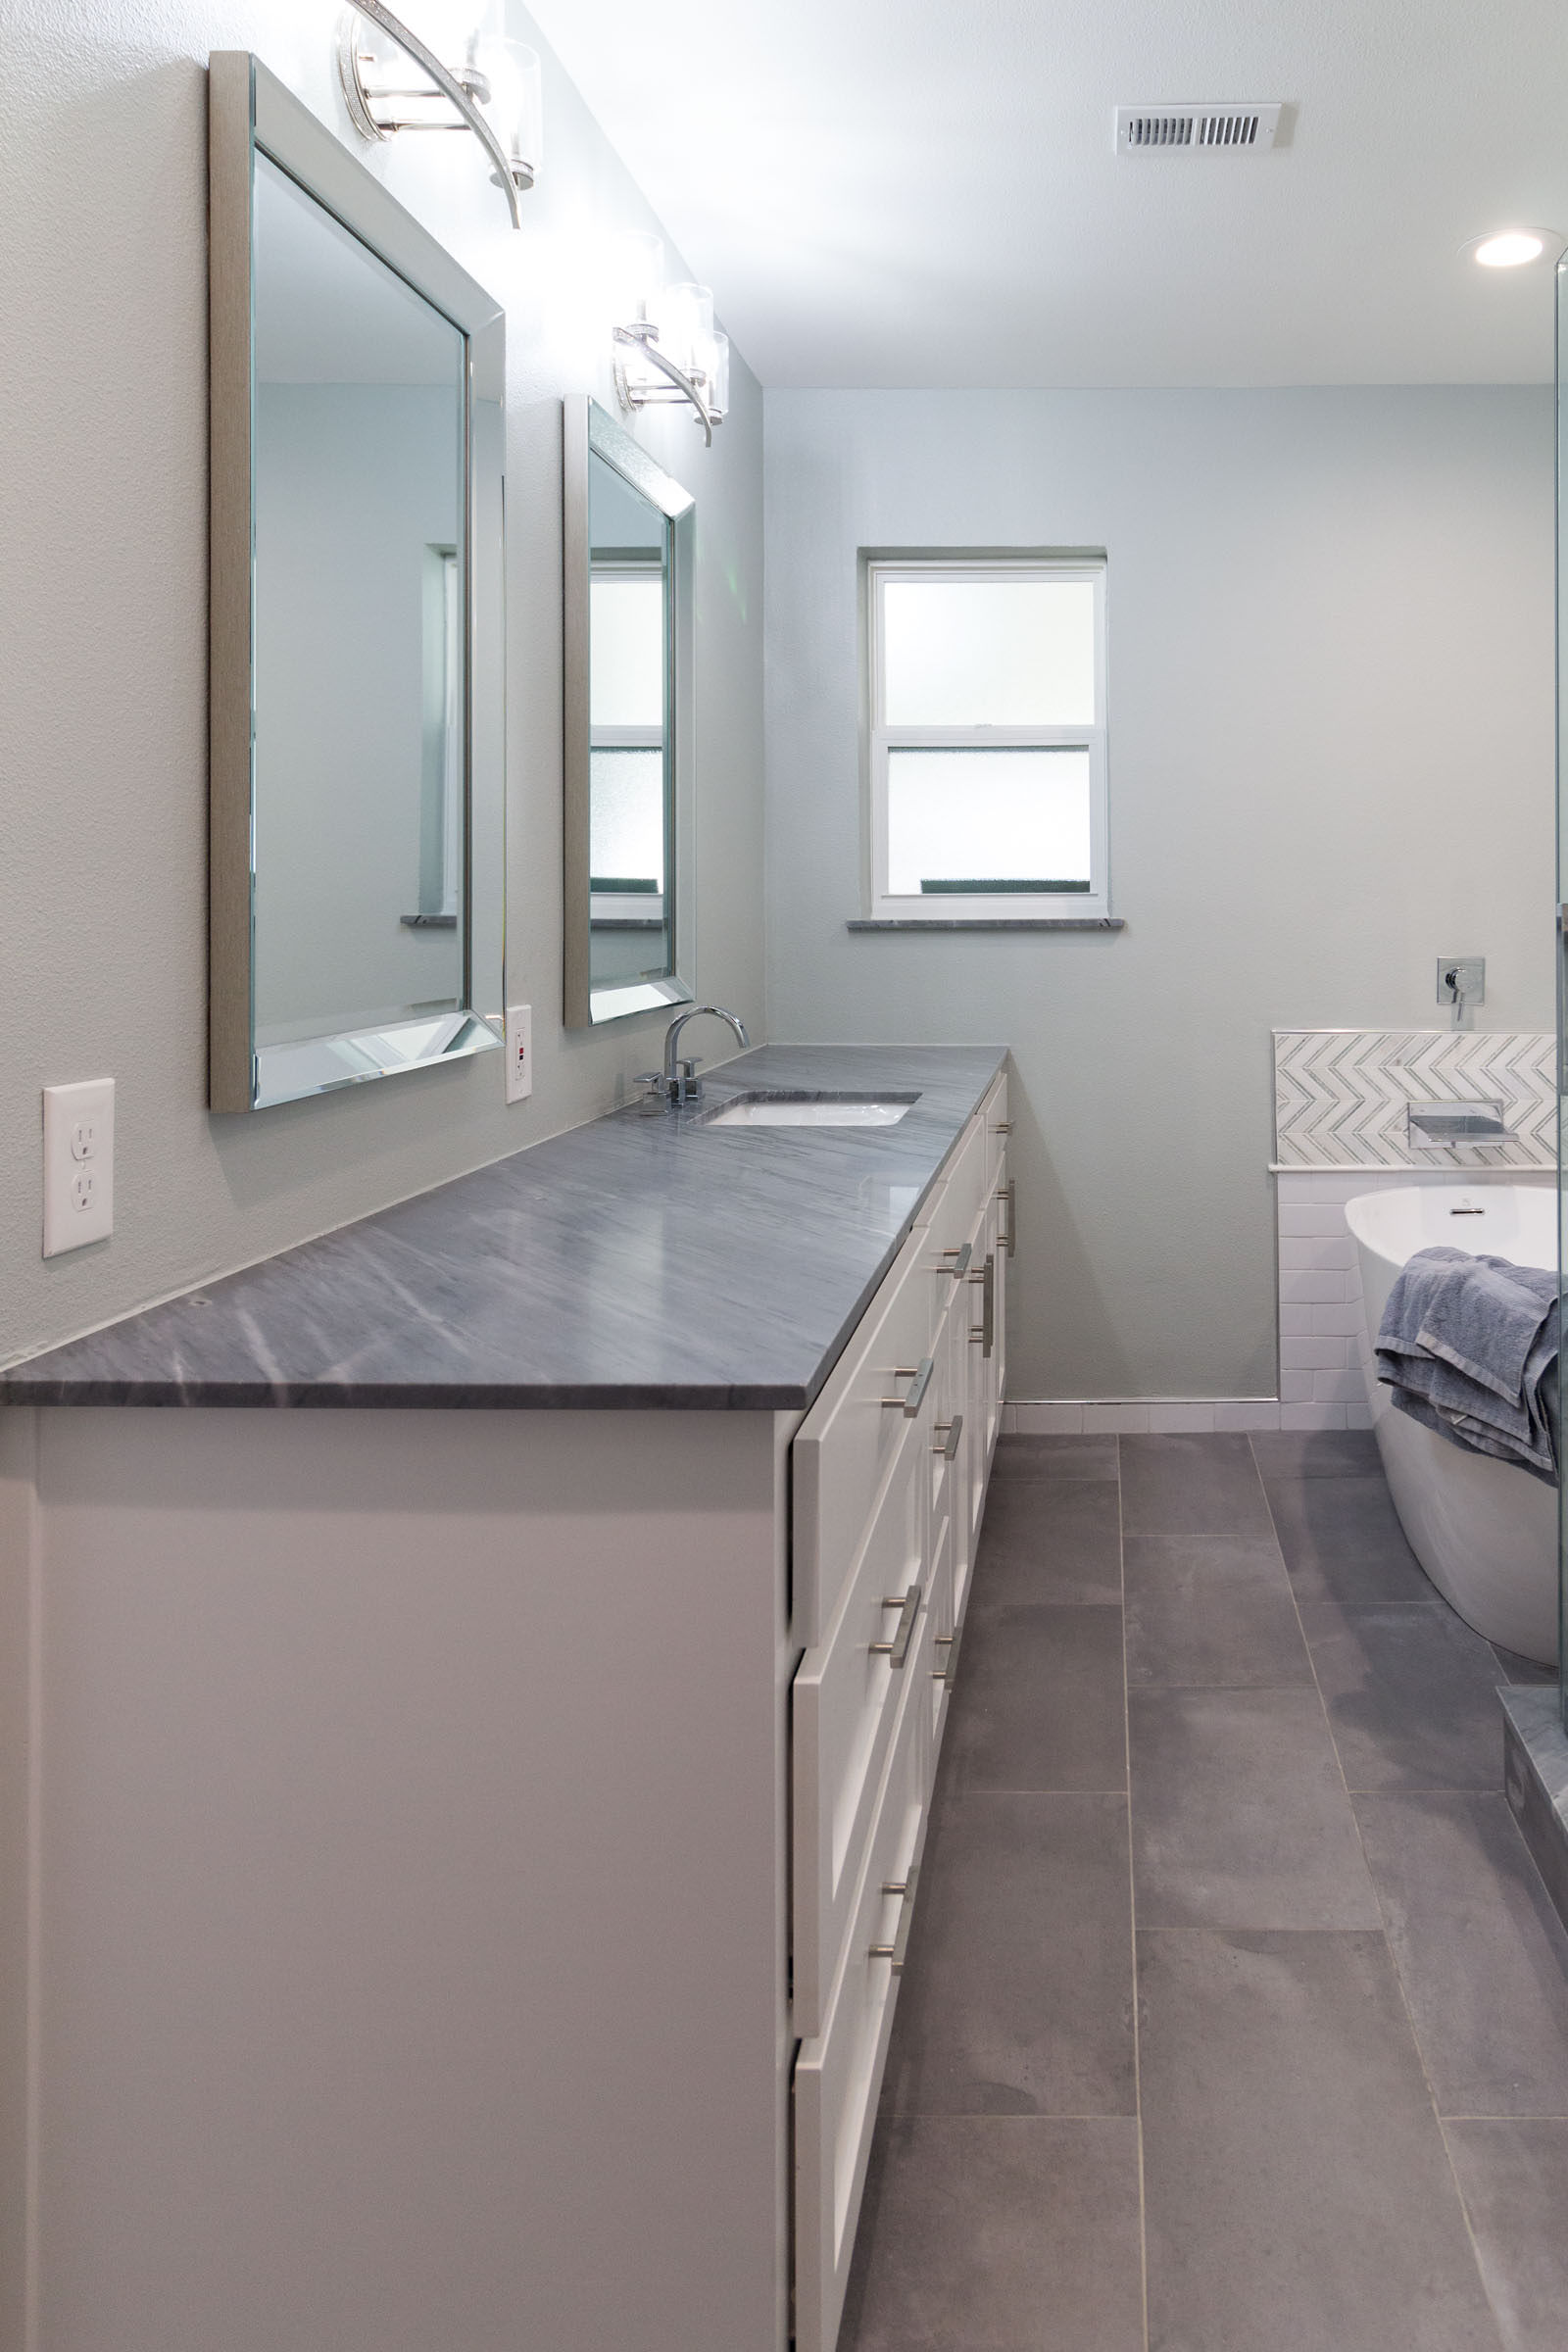 Grey counter tops and flooring, white cabinets, bathtub, small window, remodel project